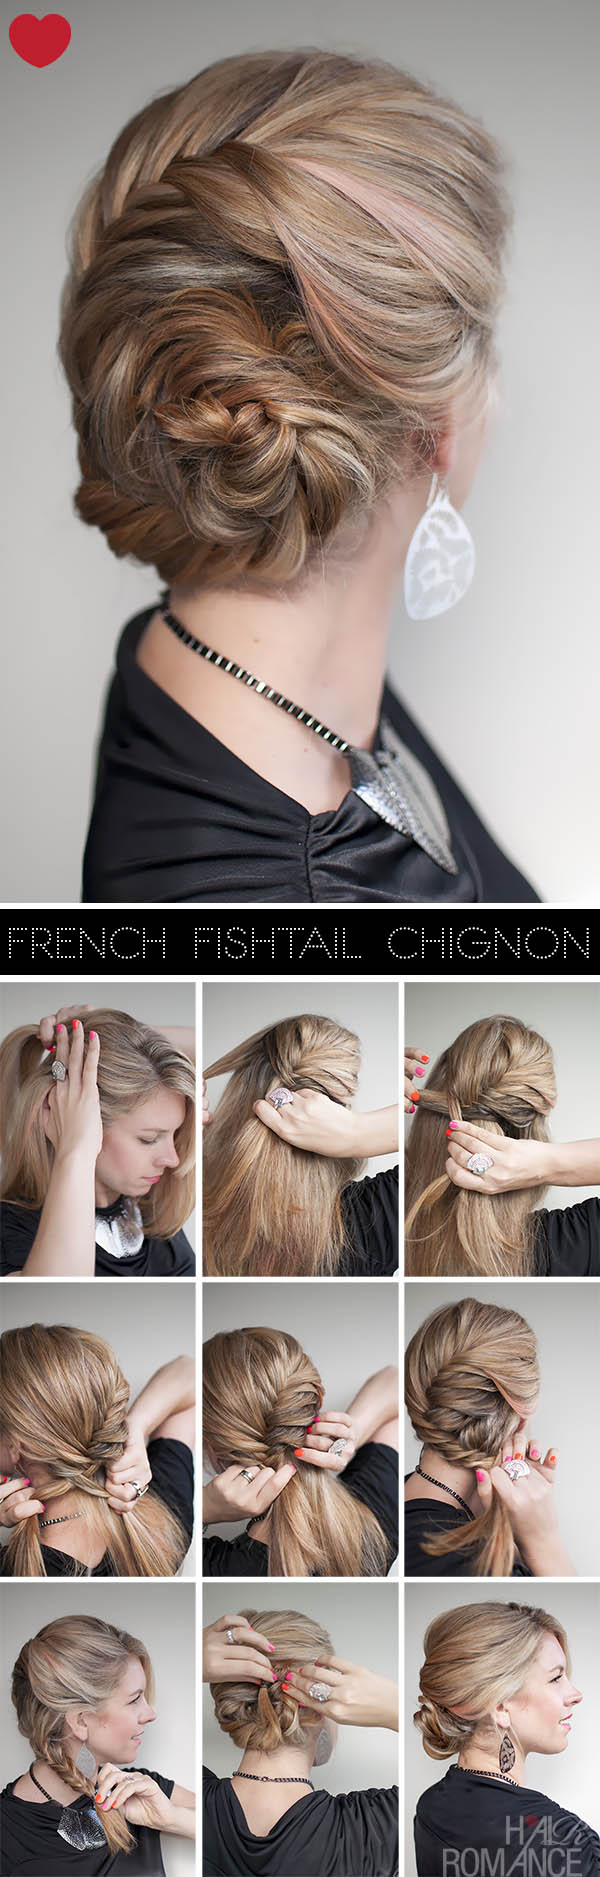 14 Fishtail Braided Hair Tutorials